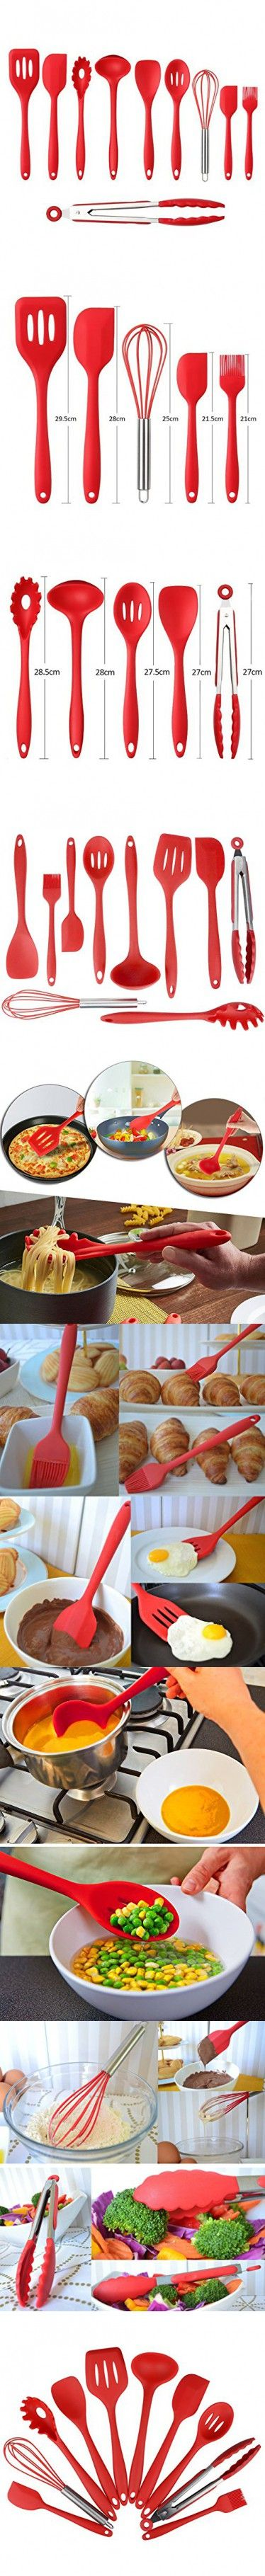 Kitchen utensils list with pictures and uses - Silicone Kitchen Utensil 10 Piece Cooking Set Turner Large Spoonula Small Spoonula